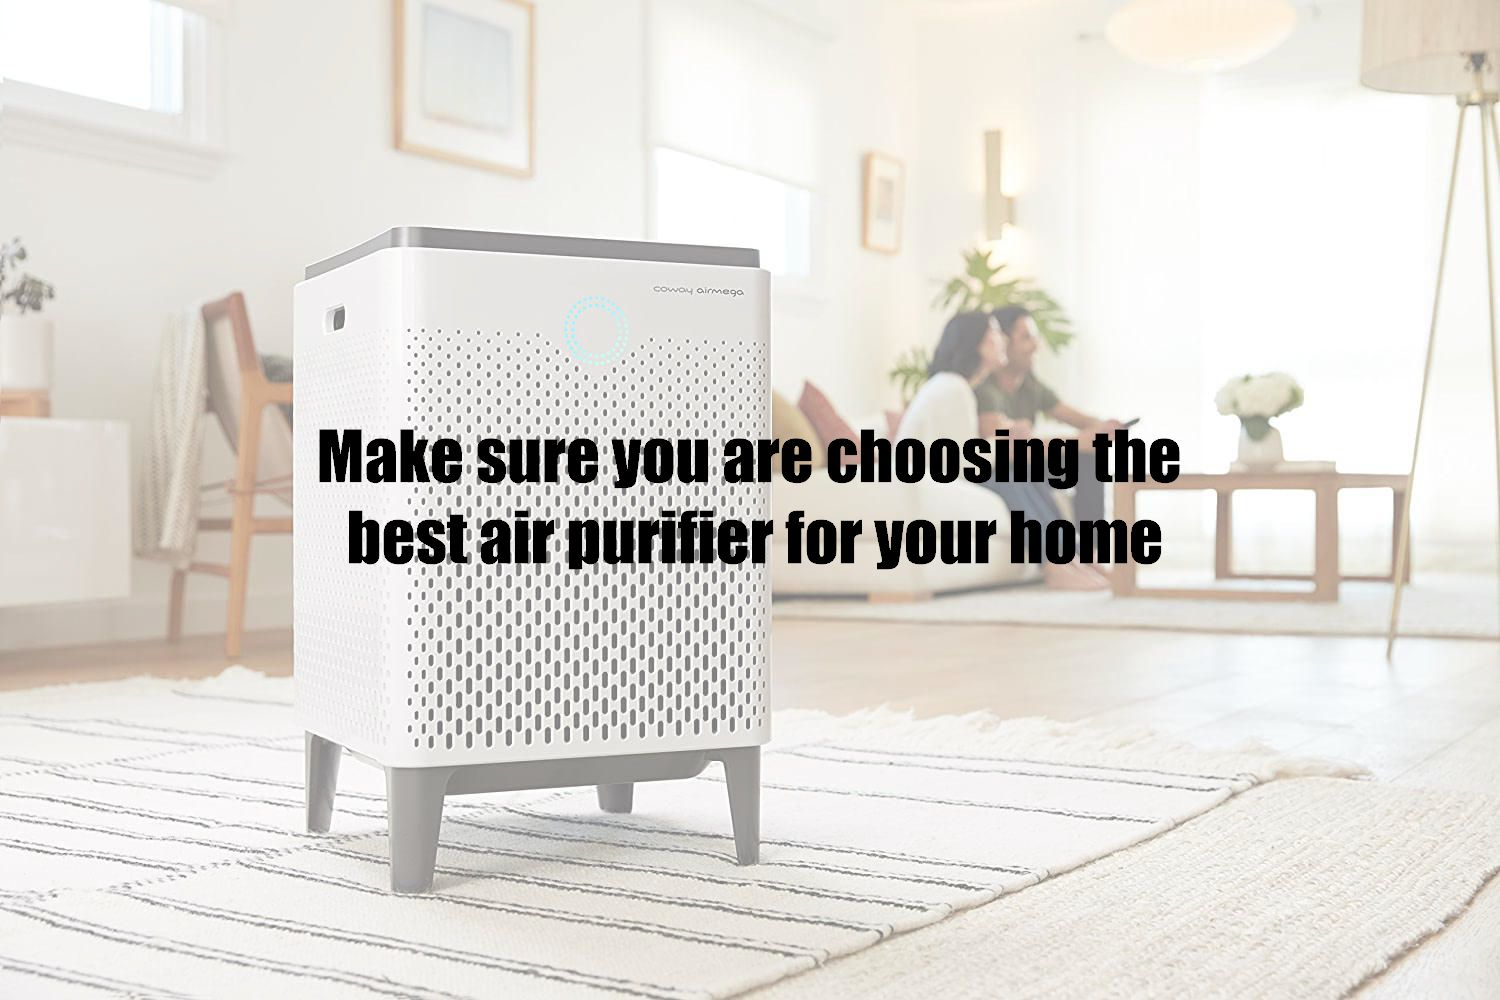 Make sure you are choosing the best air purifier for your home